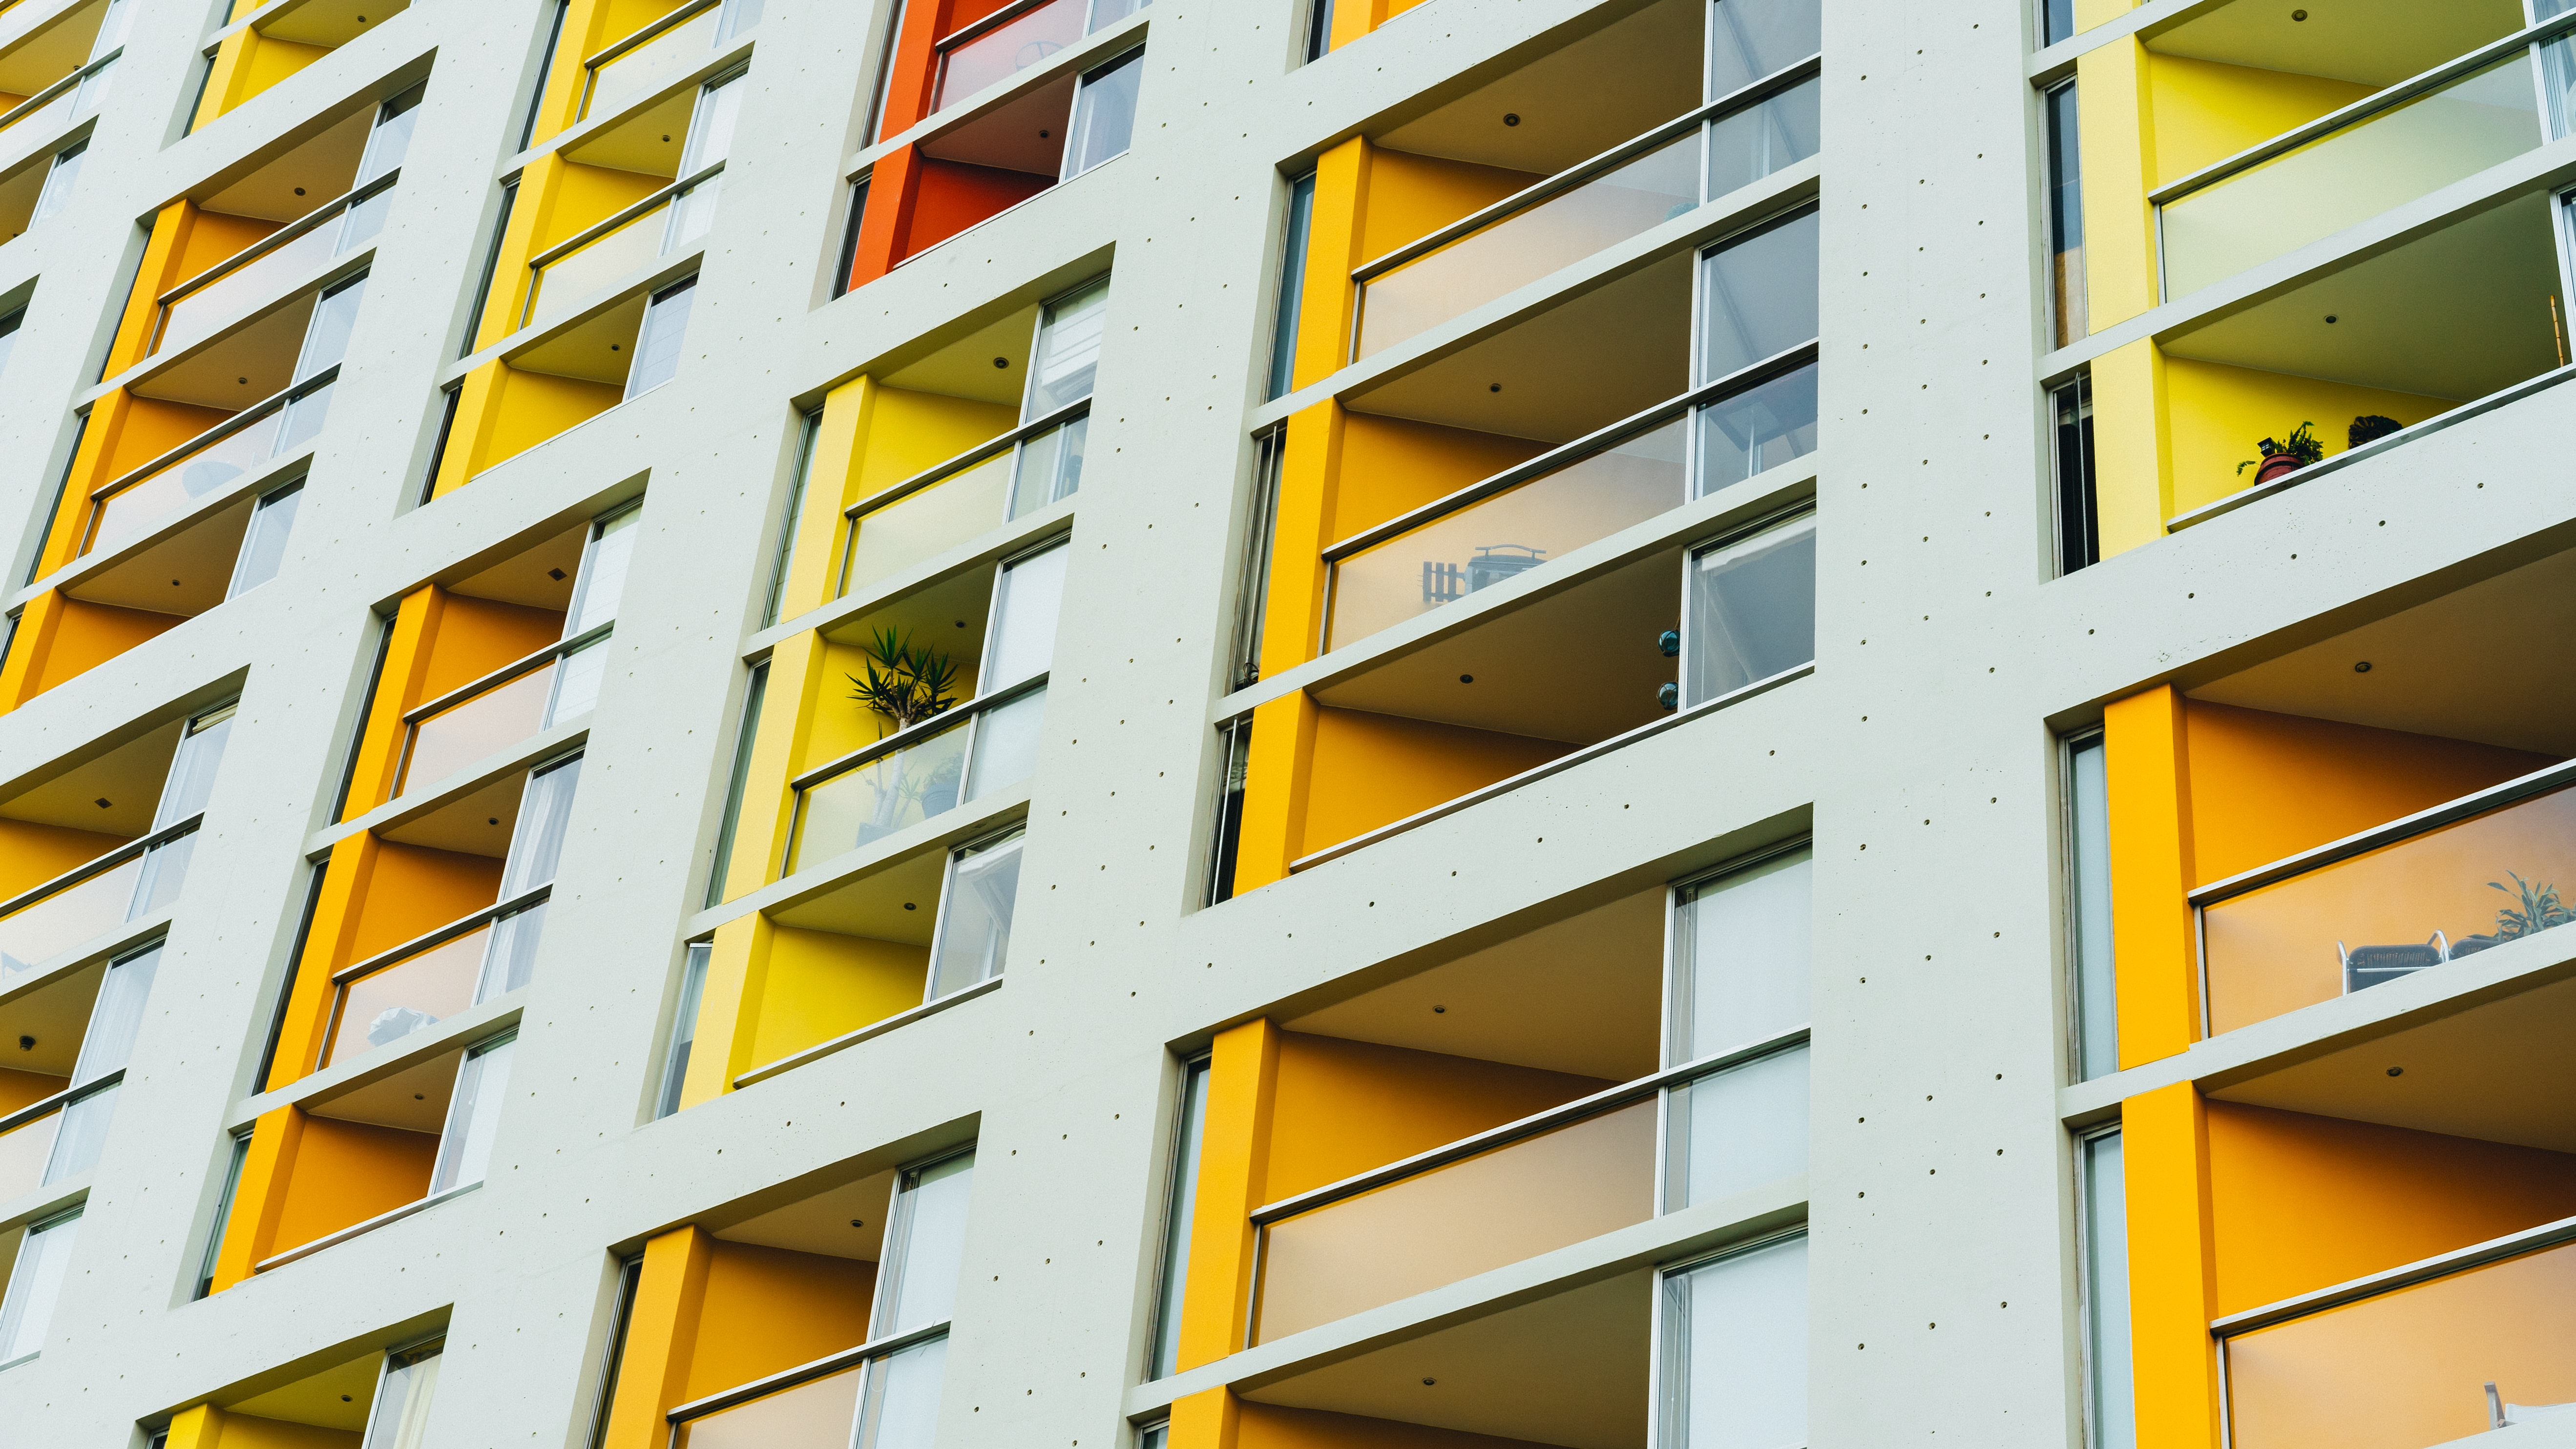 Balconies with their walls painted in various colors in an apartment block